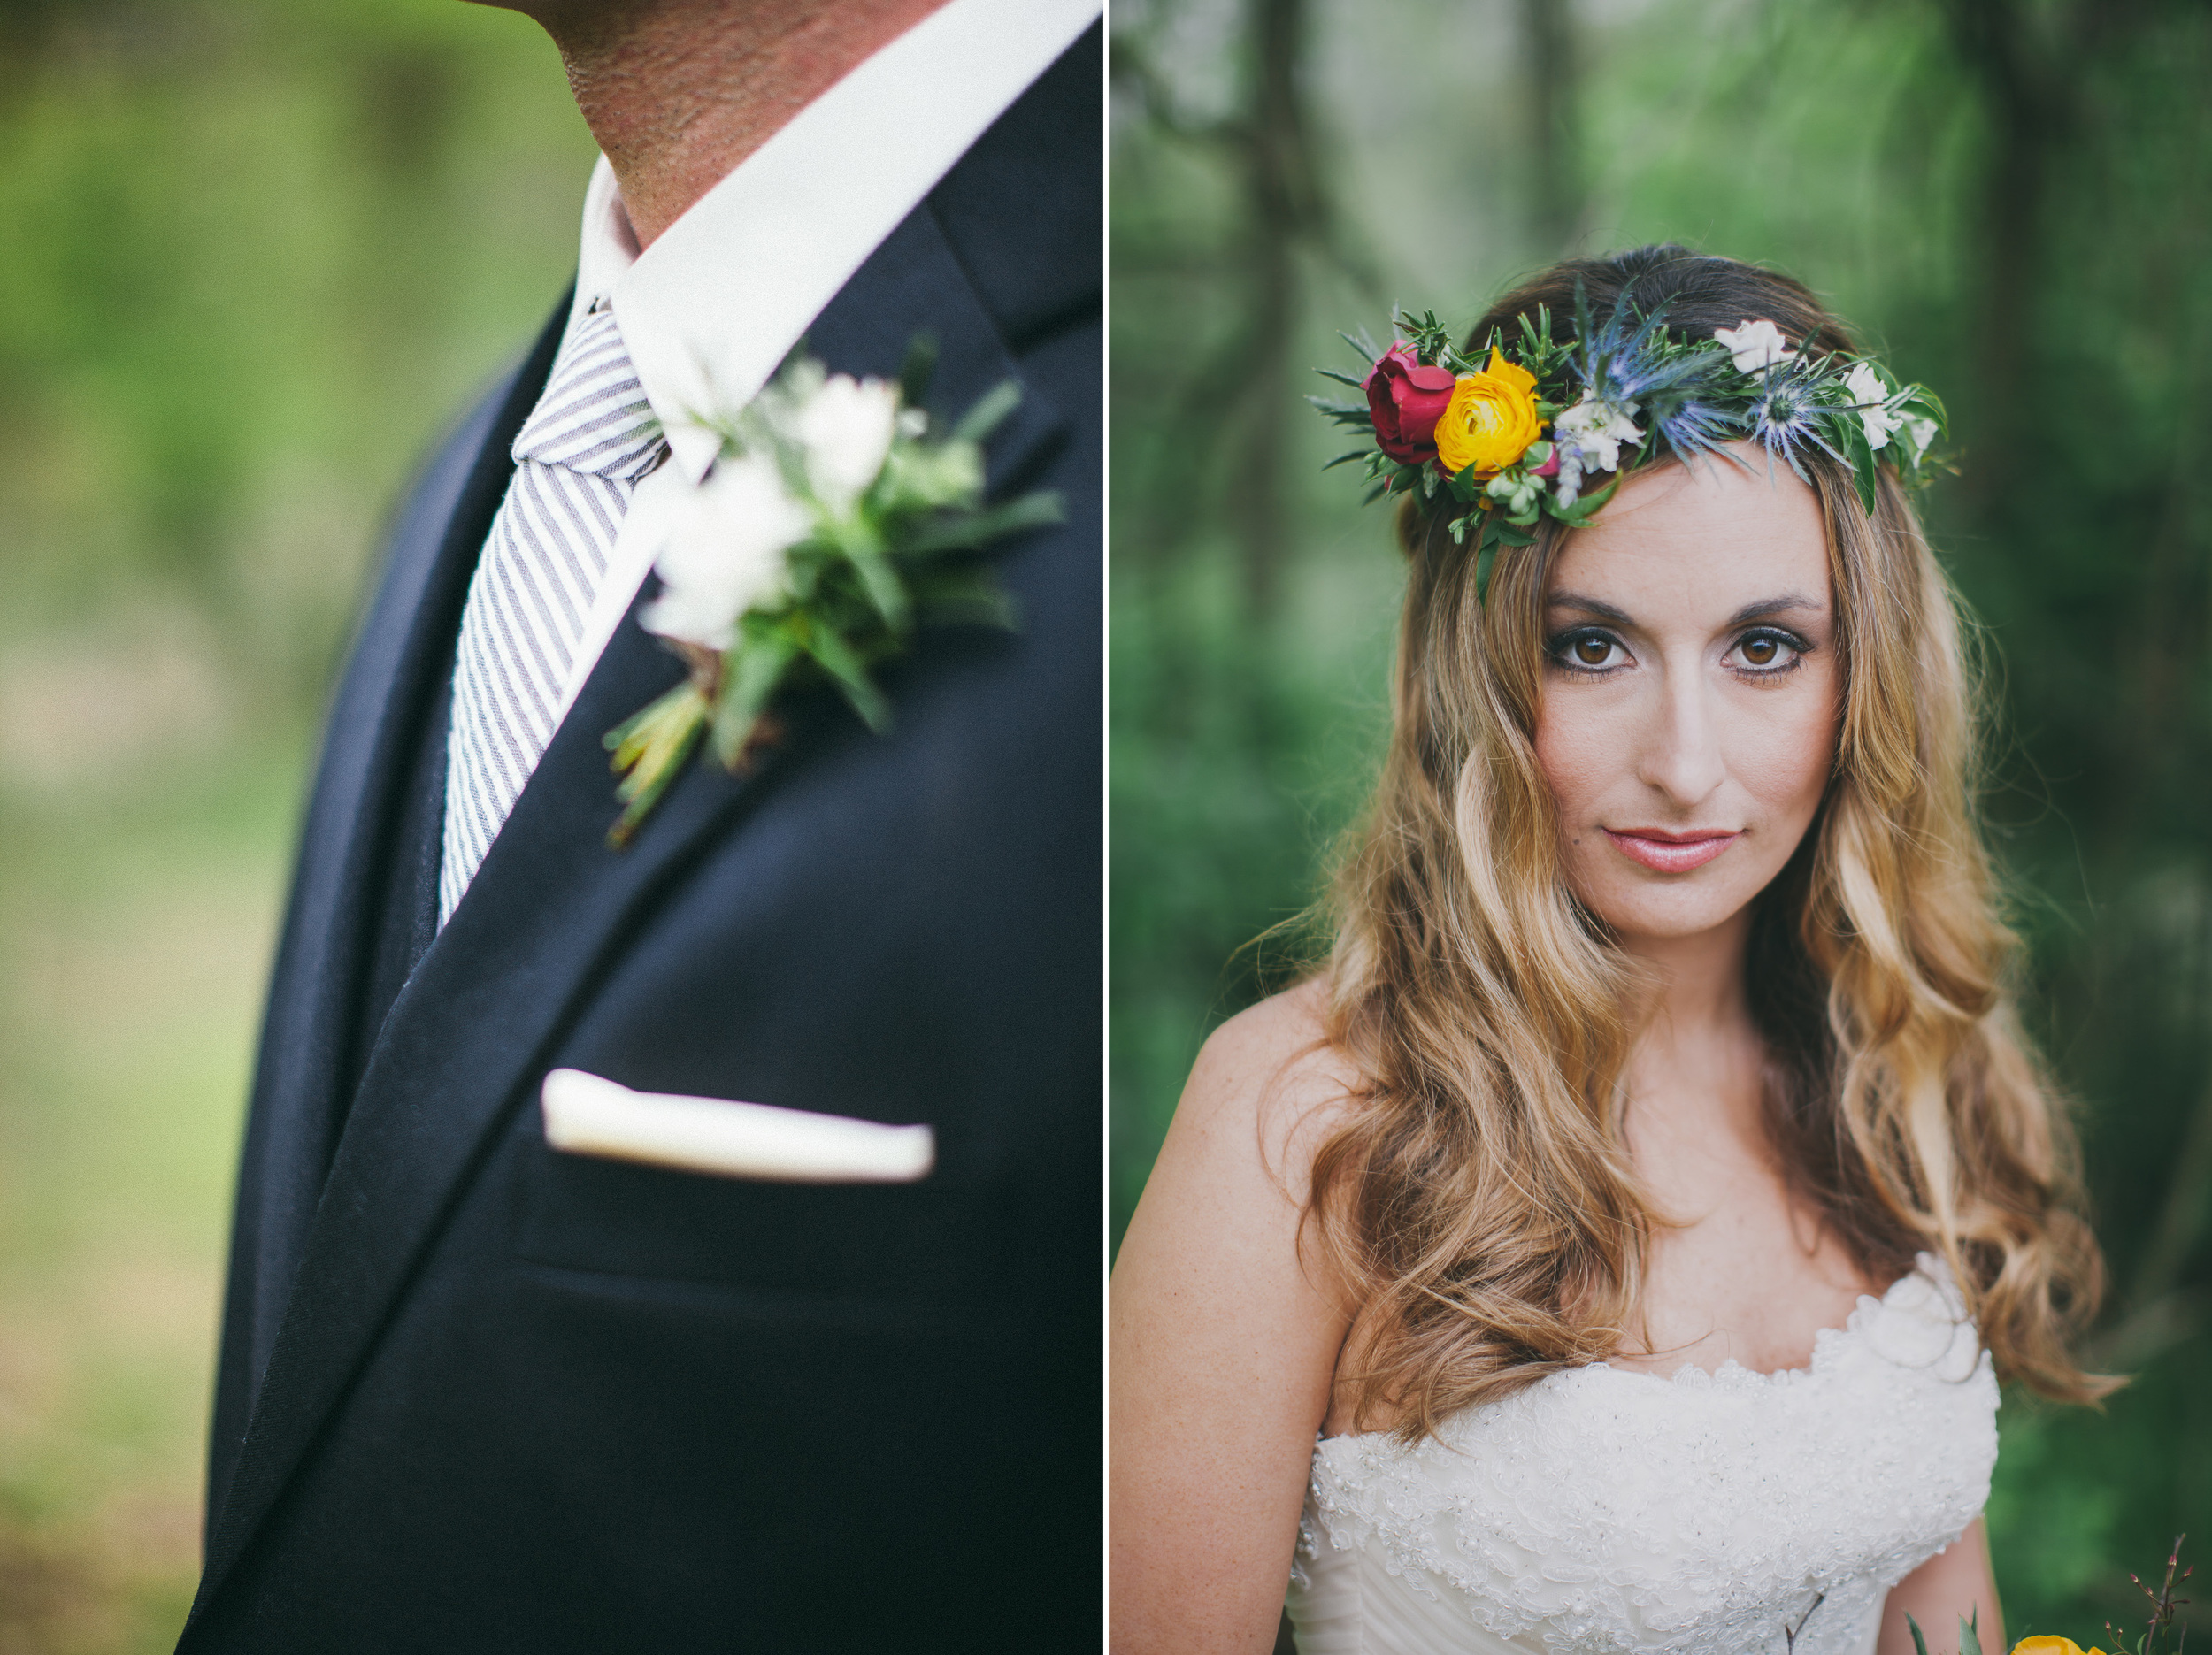 St. Louis Wedding Make-Up Artistry by A&C